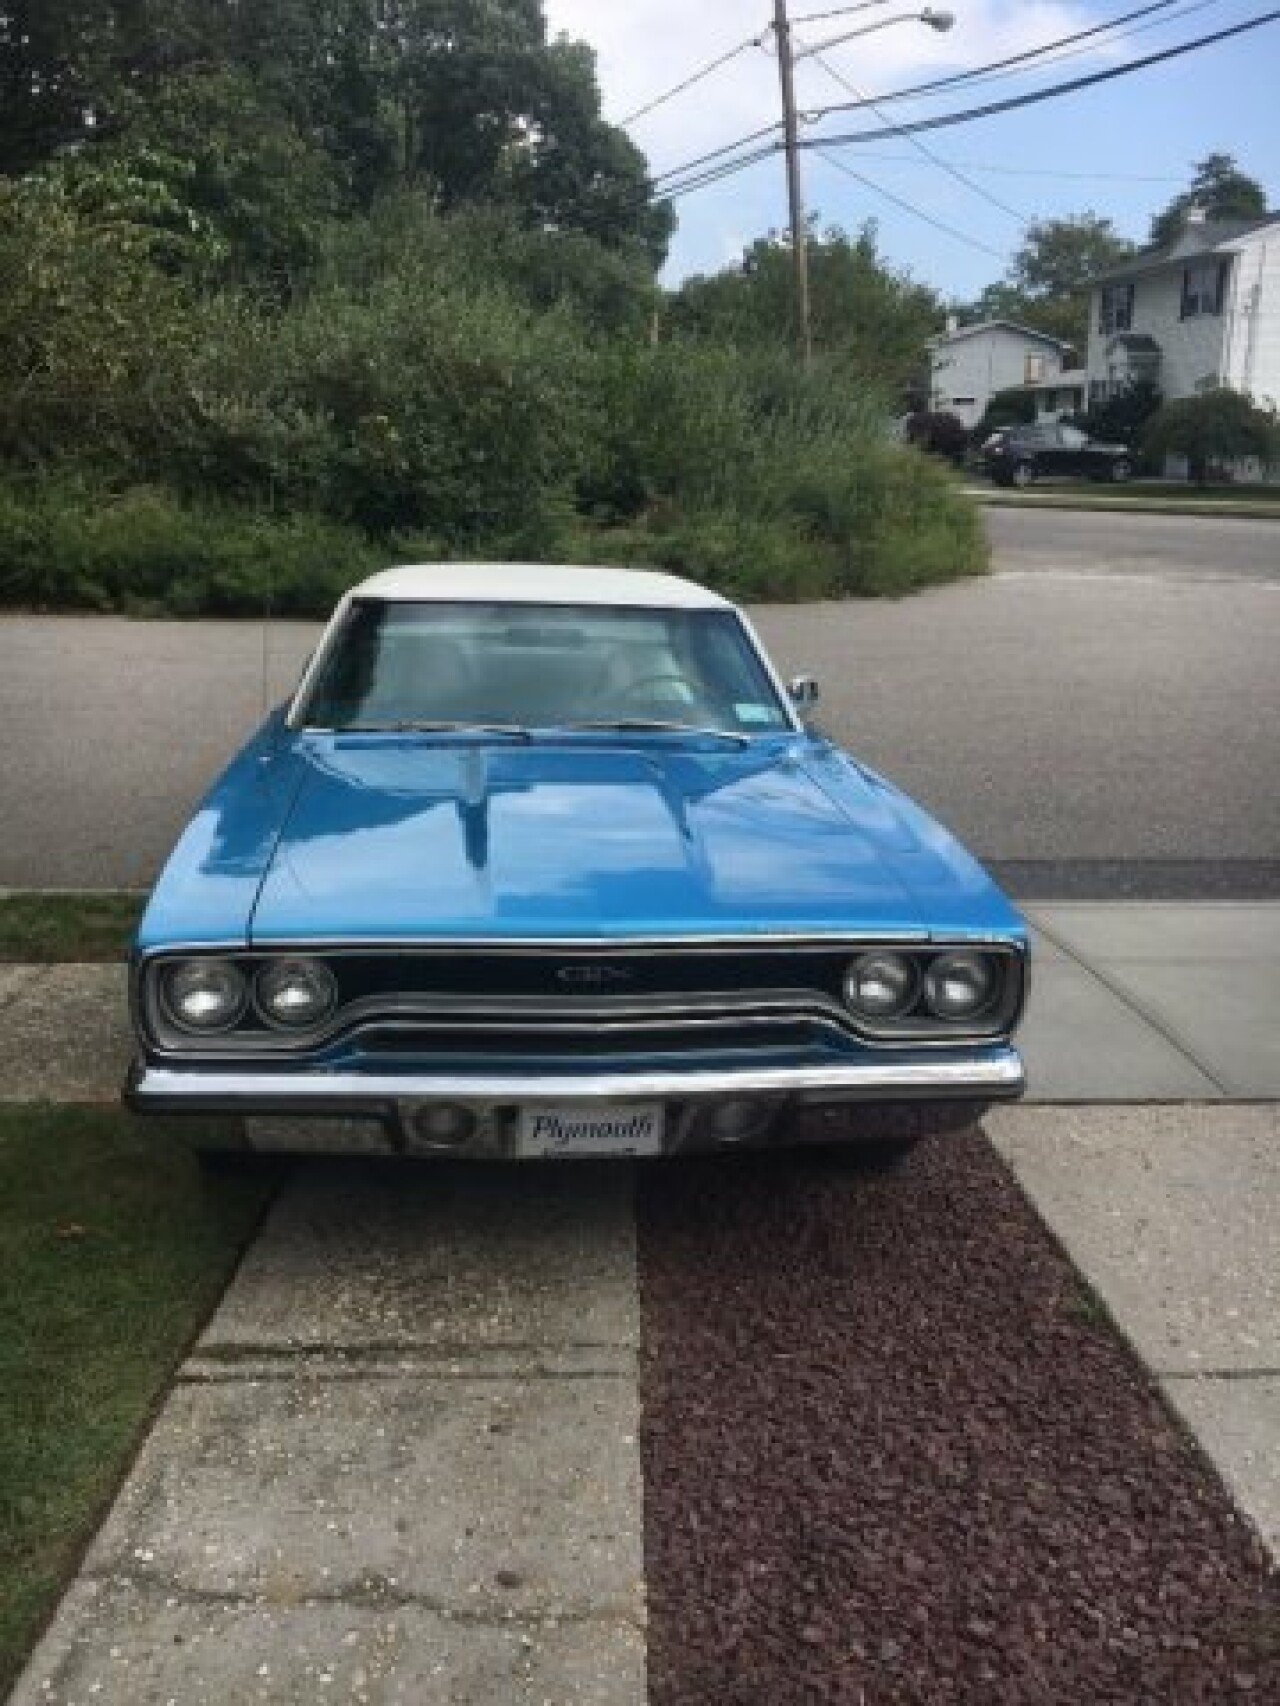 Car Auctions Ny >> 1970 Plymouth GTX for sale near Riverhead, New York 11901 - Classics on Autotrader